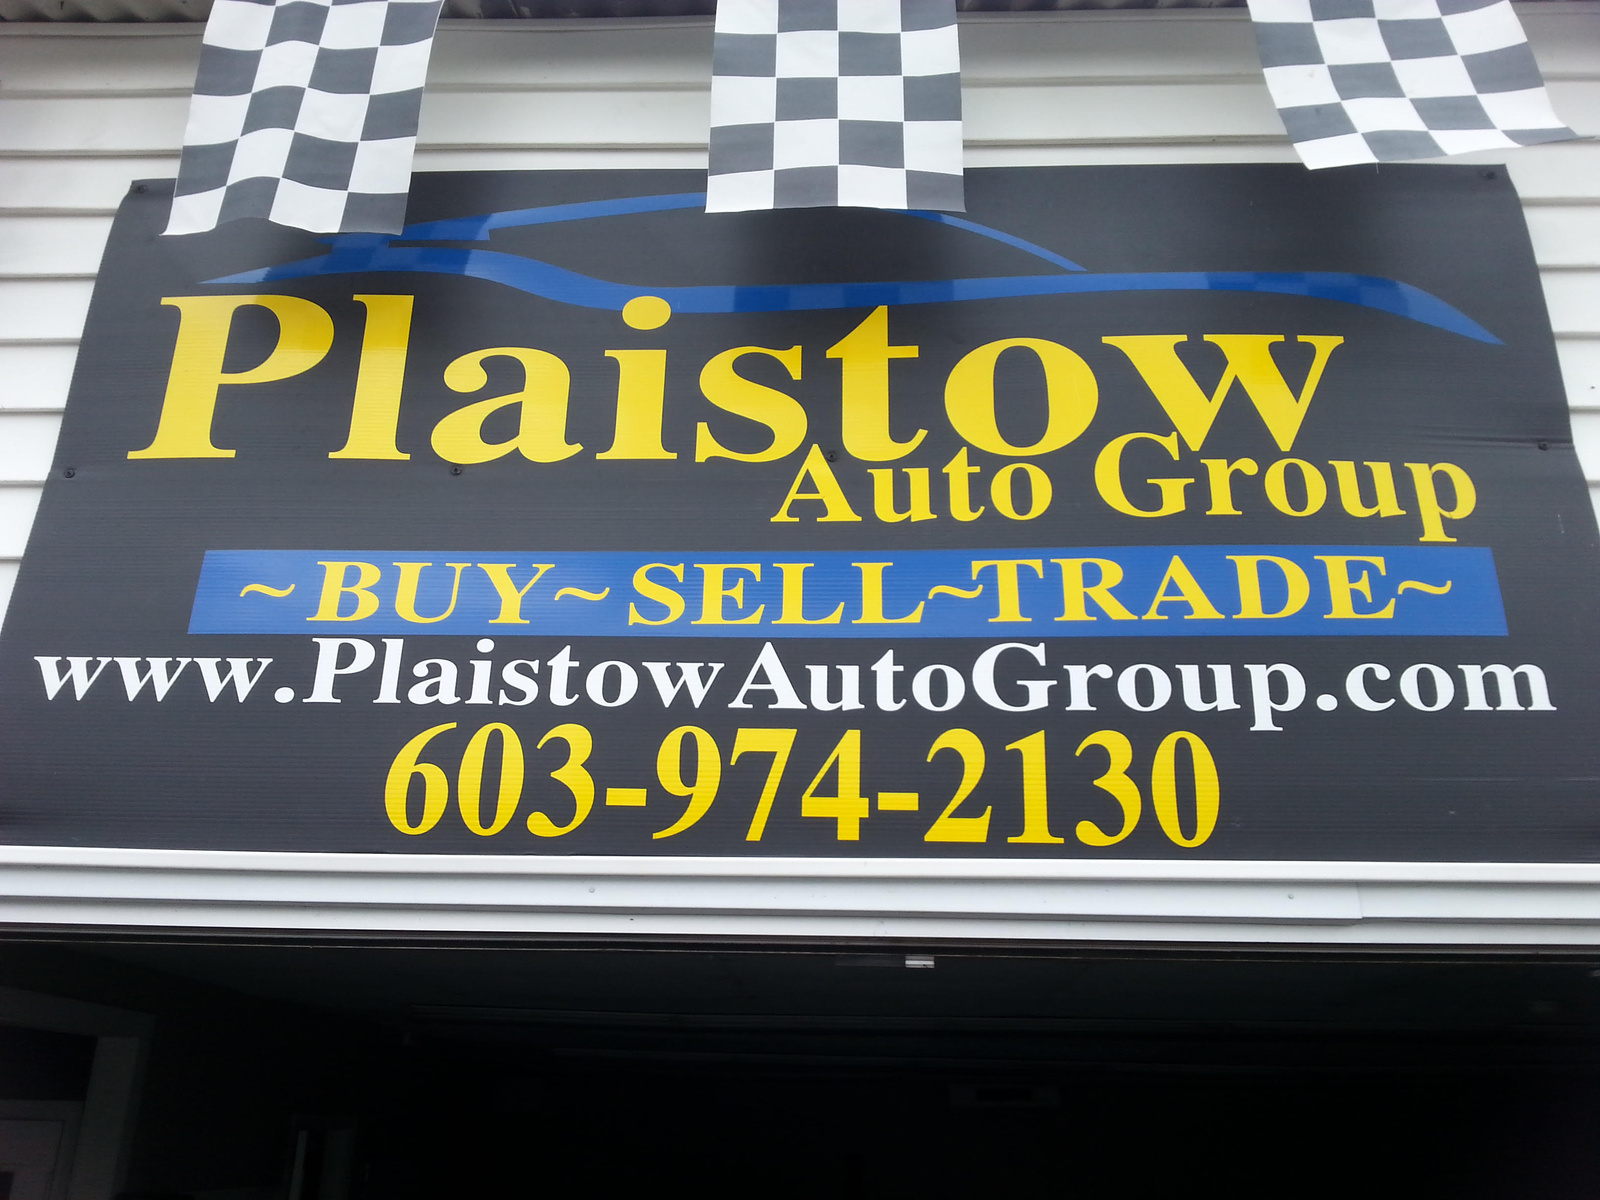 Dodge Dealers In Nh >> Plaistow Auto Group - Plaistow, NH: Read Consumer reviews ...